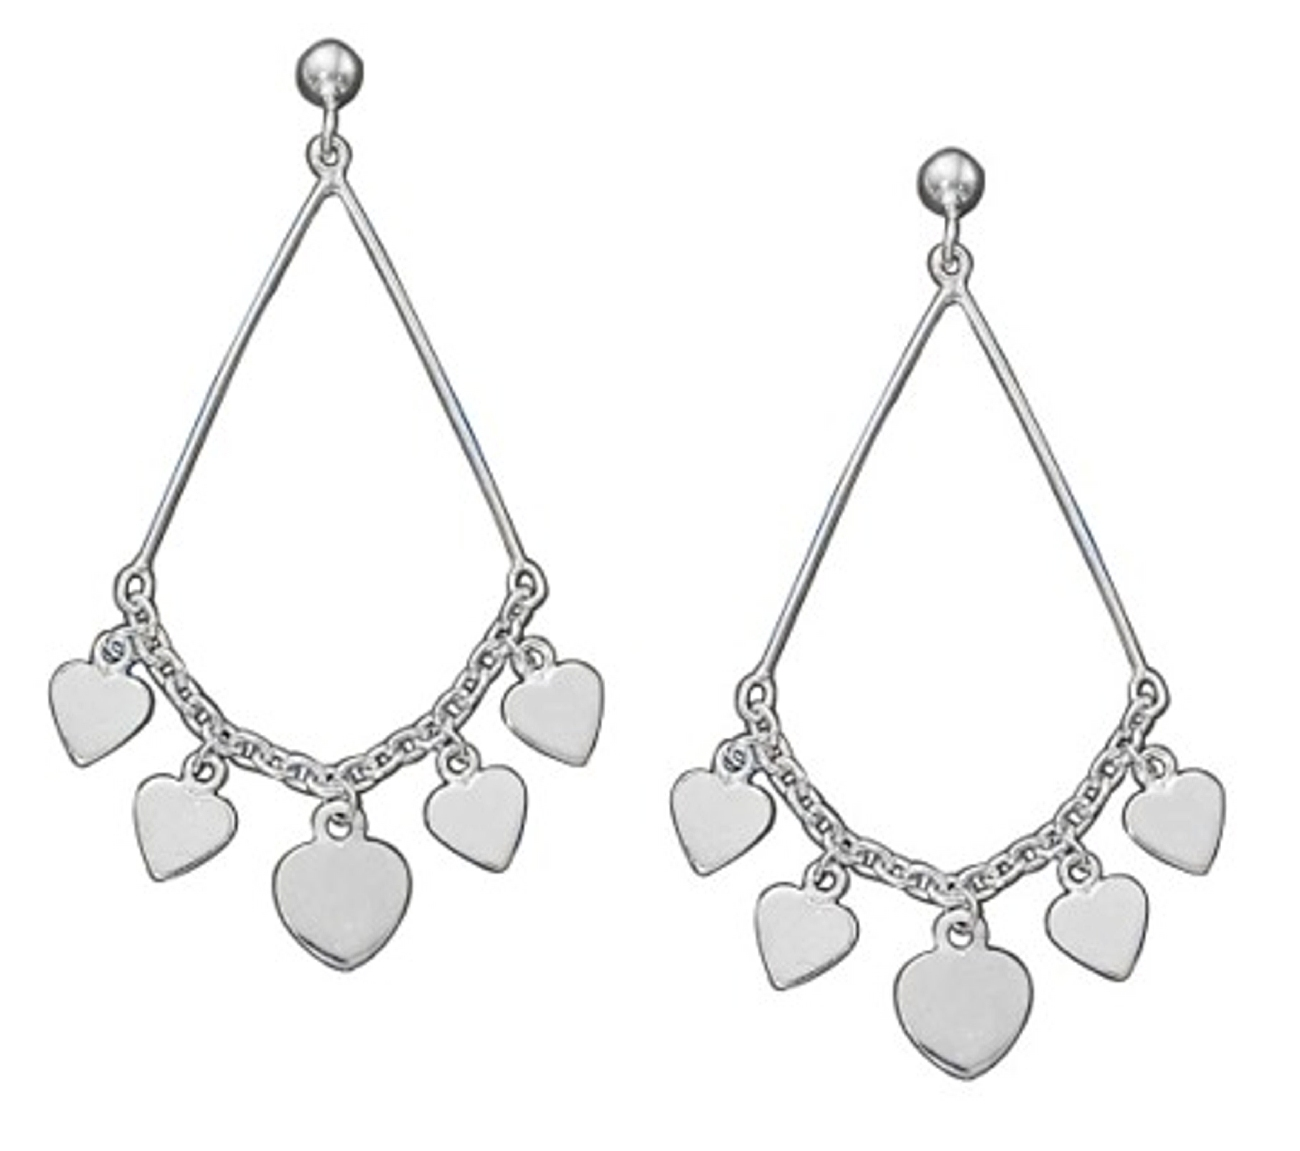 Double Bar Connected Chain Heart Dangles Post Earrings